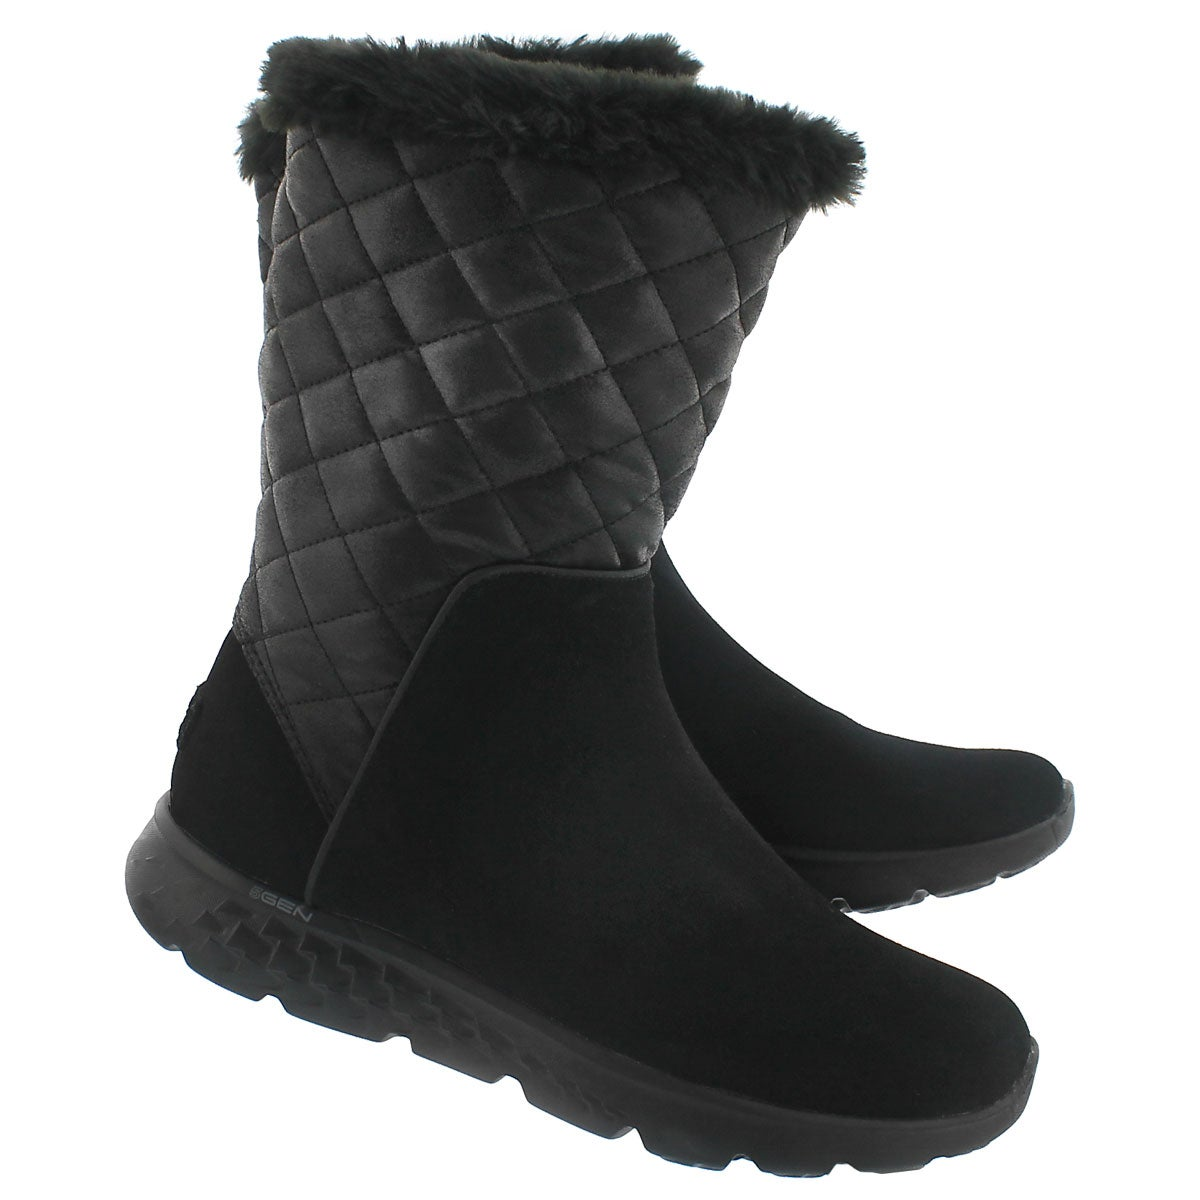 Lds 400 Snugly black quilted mid boot